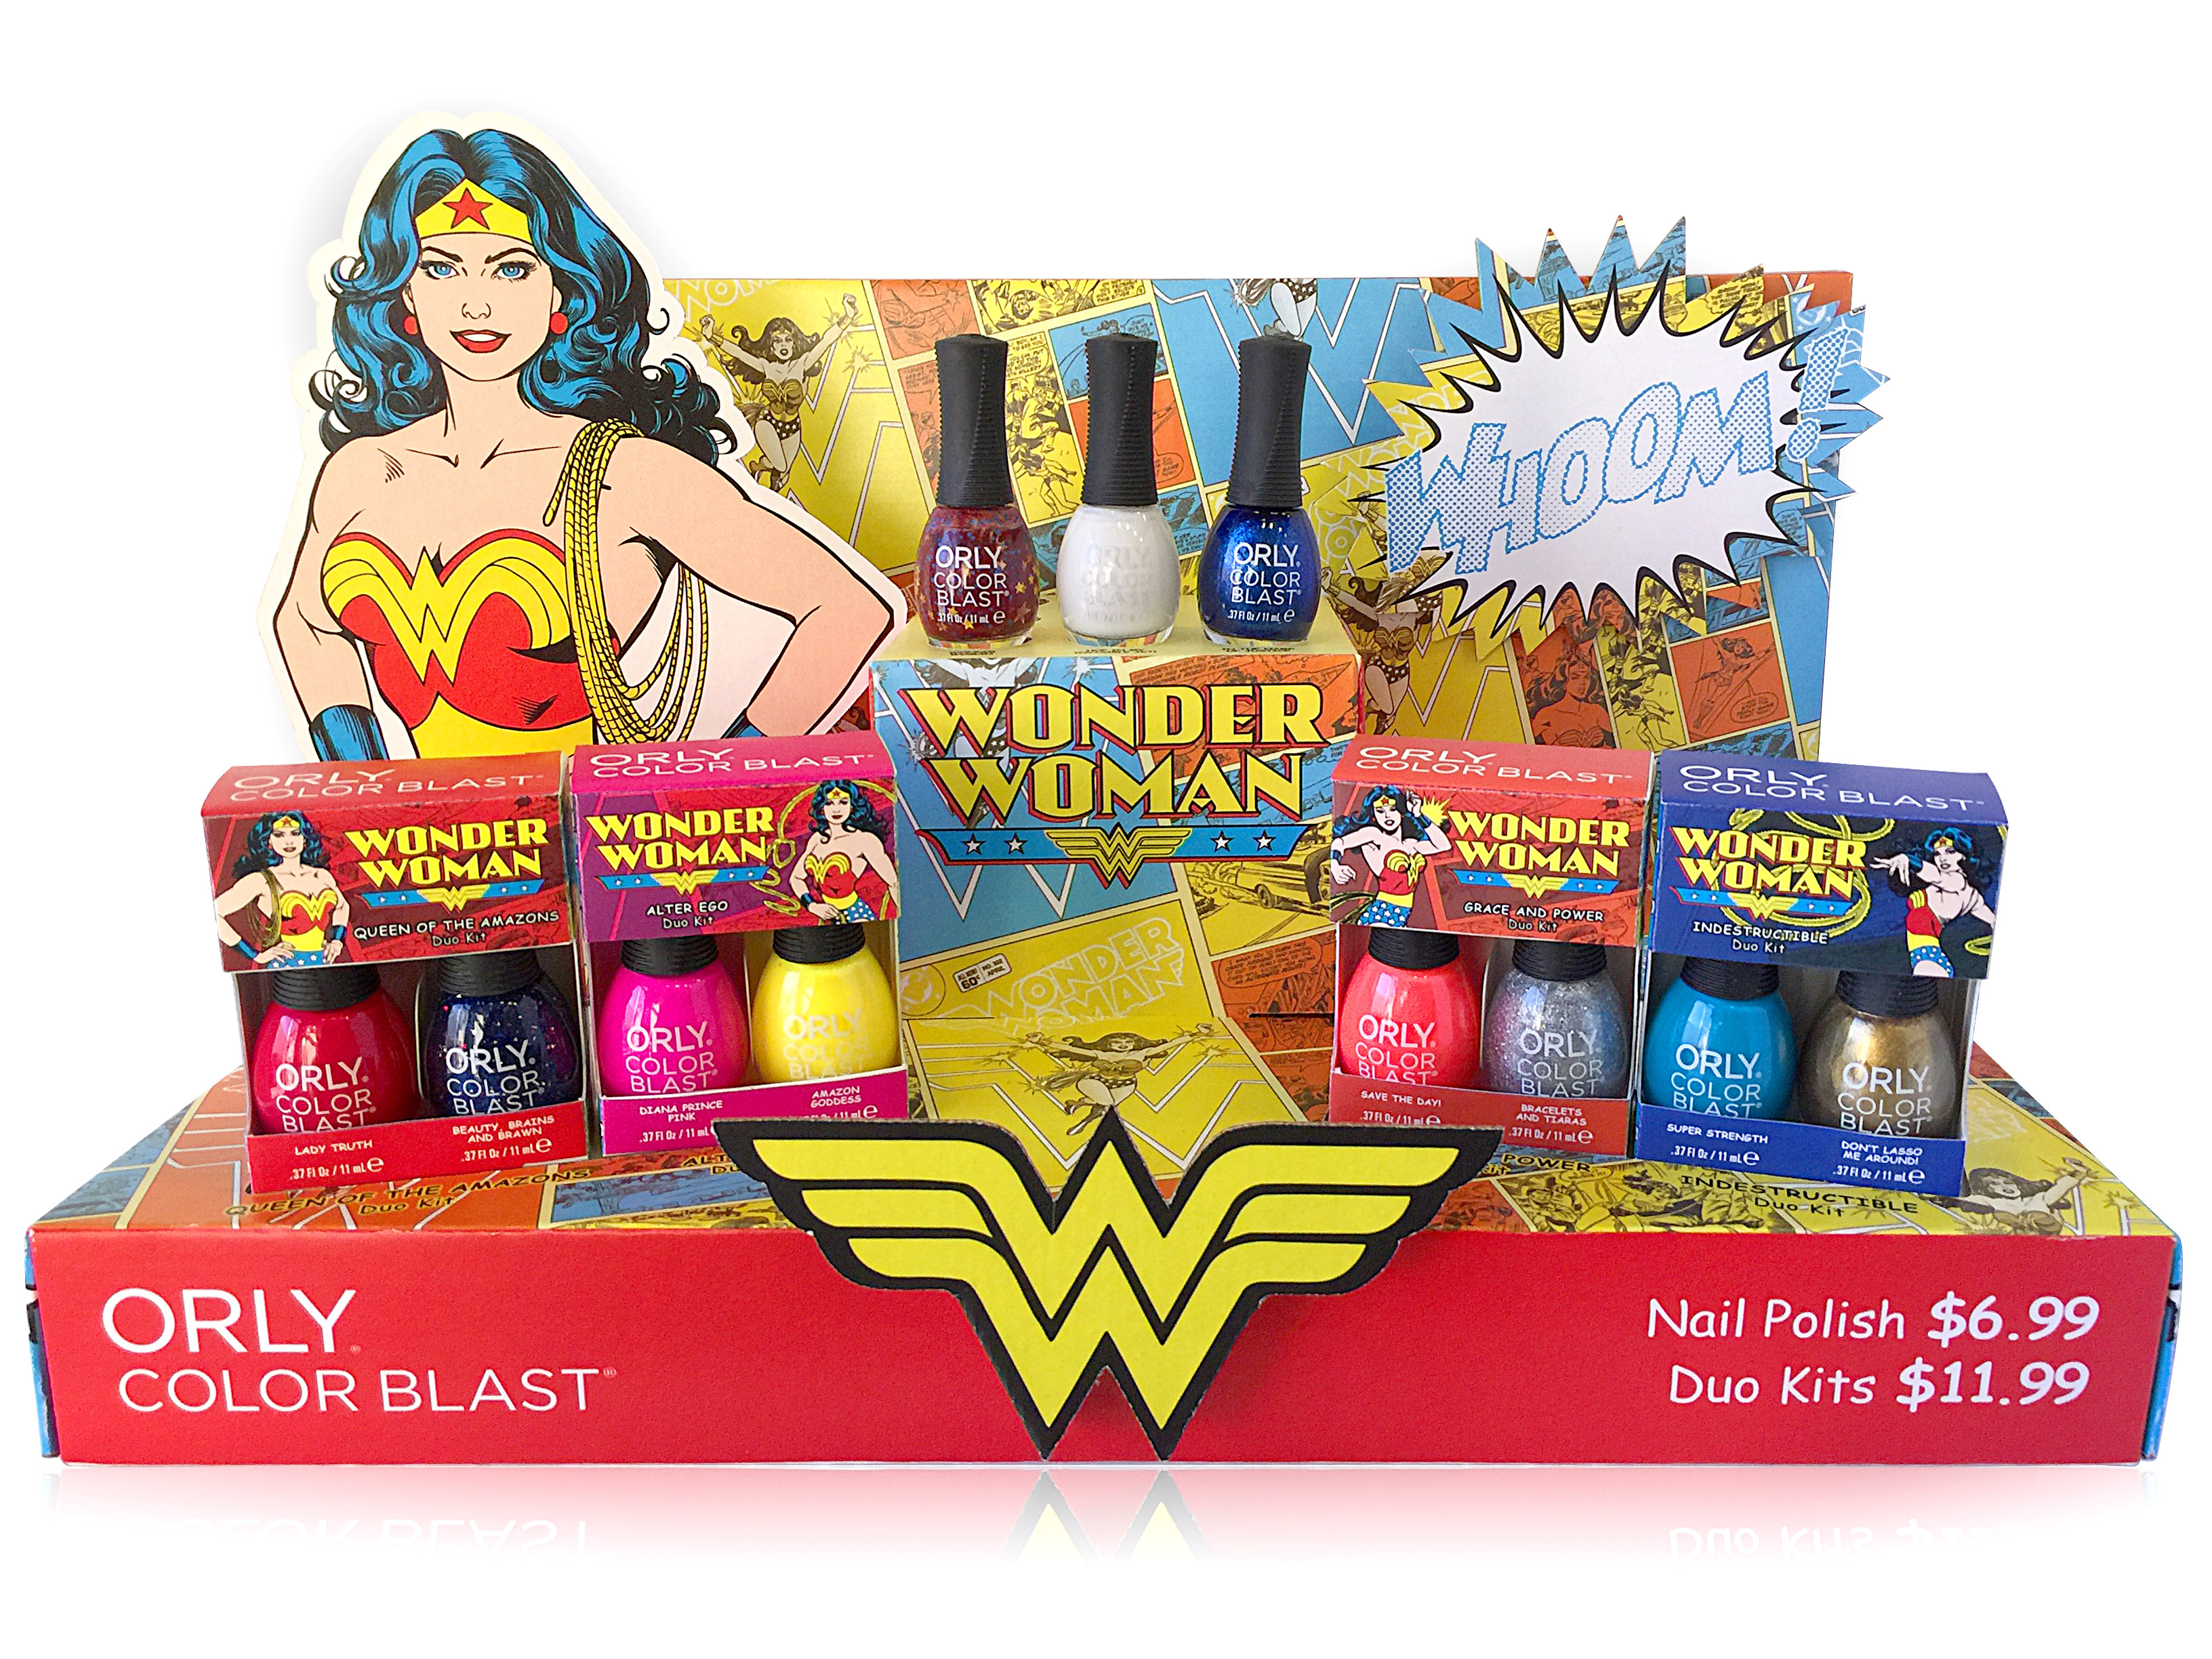 Wonder Woman Beauty Collection Exclusive At Walgreens - Nerd Reactor